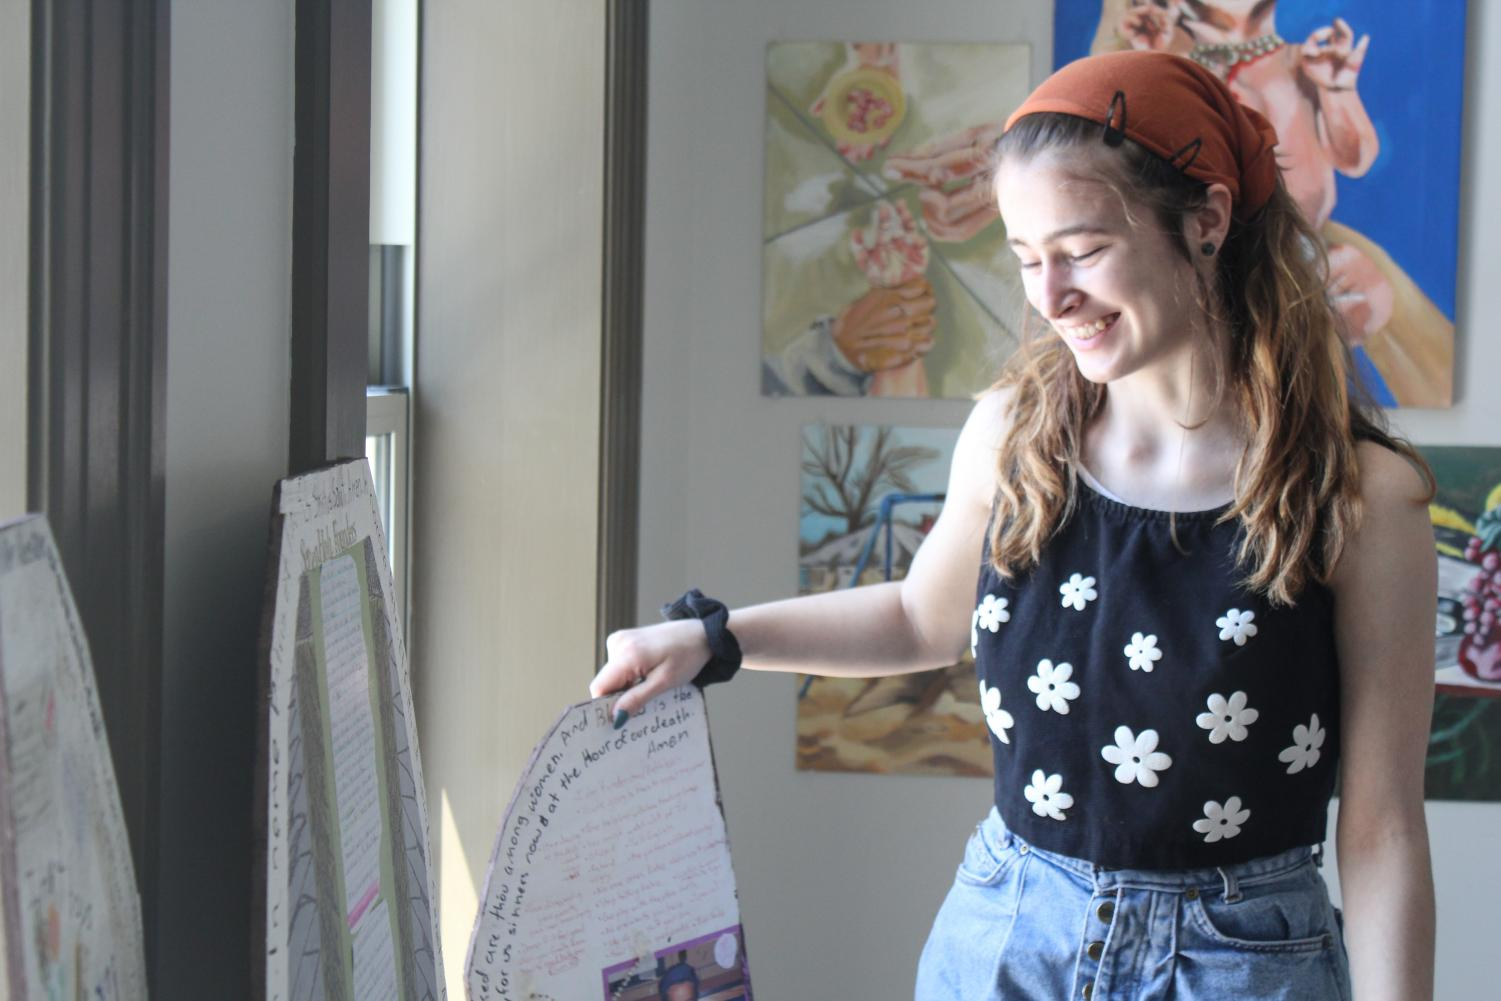 Kathleen Boesch, junior, sets up her display for her AP Art Studio portfolio project. In her project, she chose the explore how her upbringing in a Catholic school affected her upbringing. She does this by using Catholic imagery and stories into the paintings to symbolize her experiences.